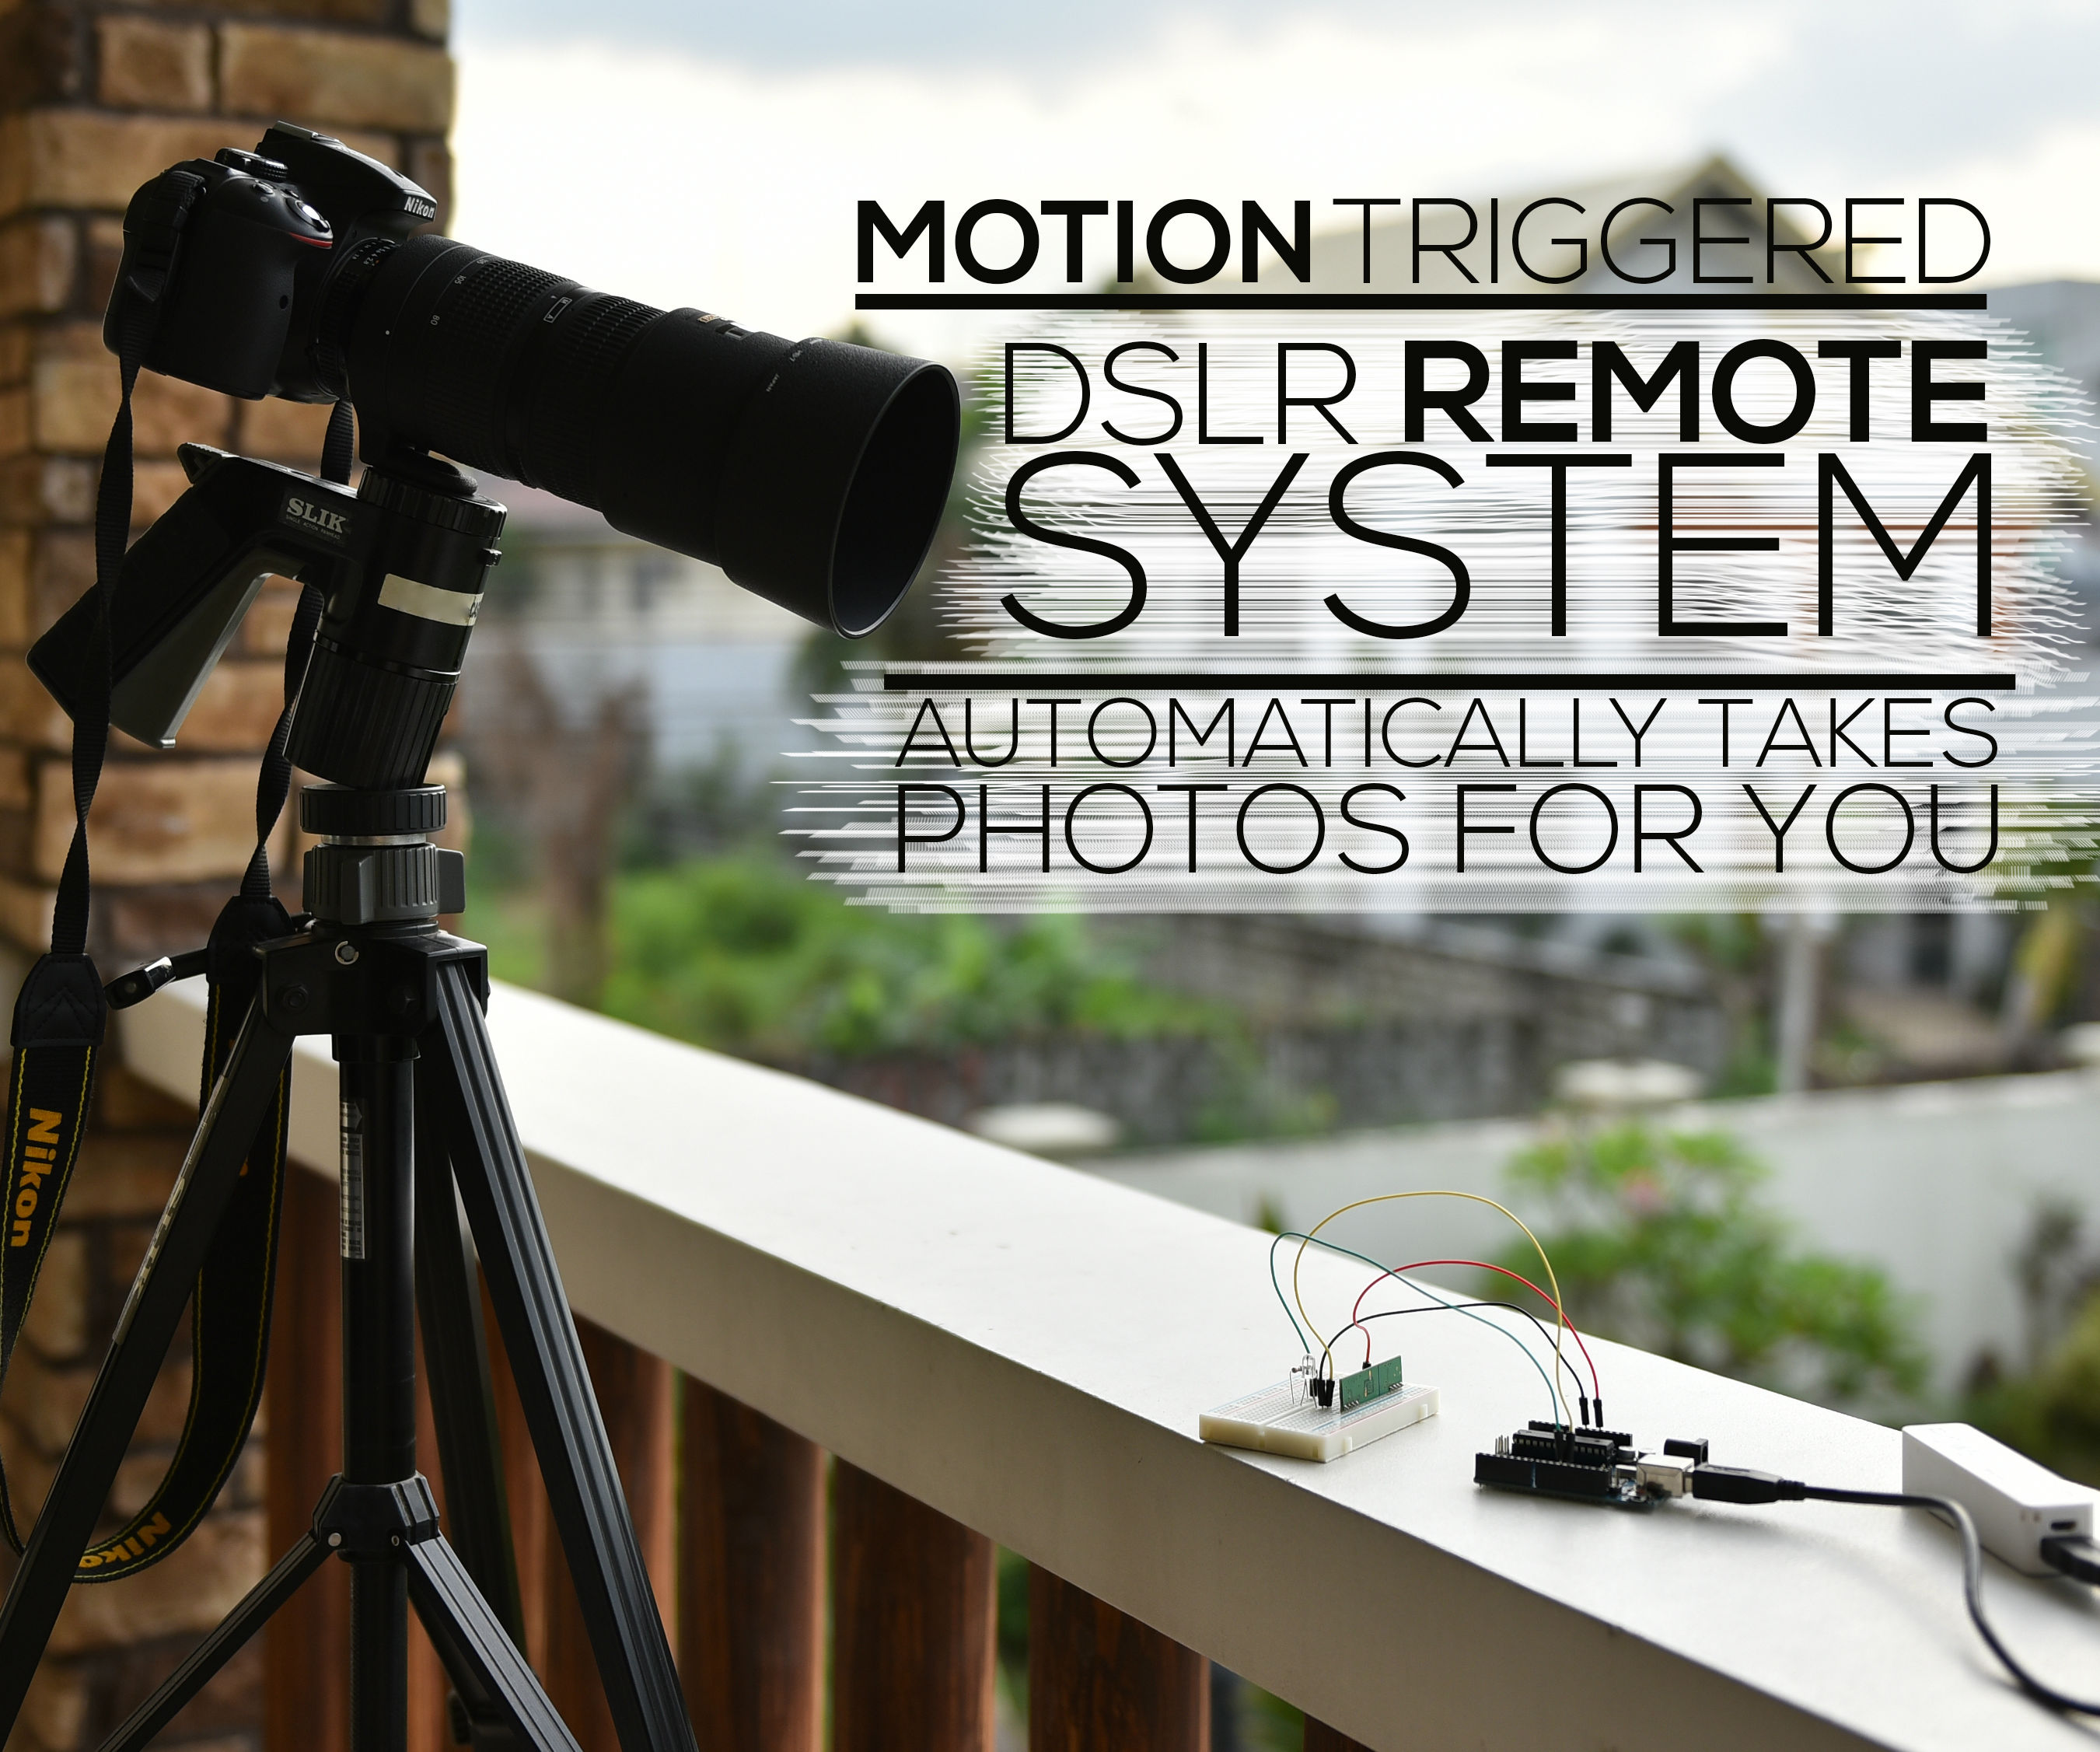 Motion Triggered DSLR Remote System